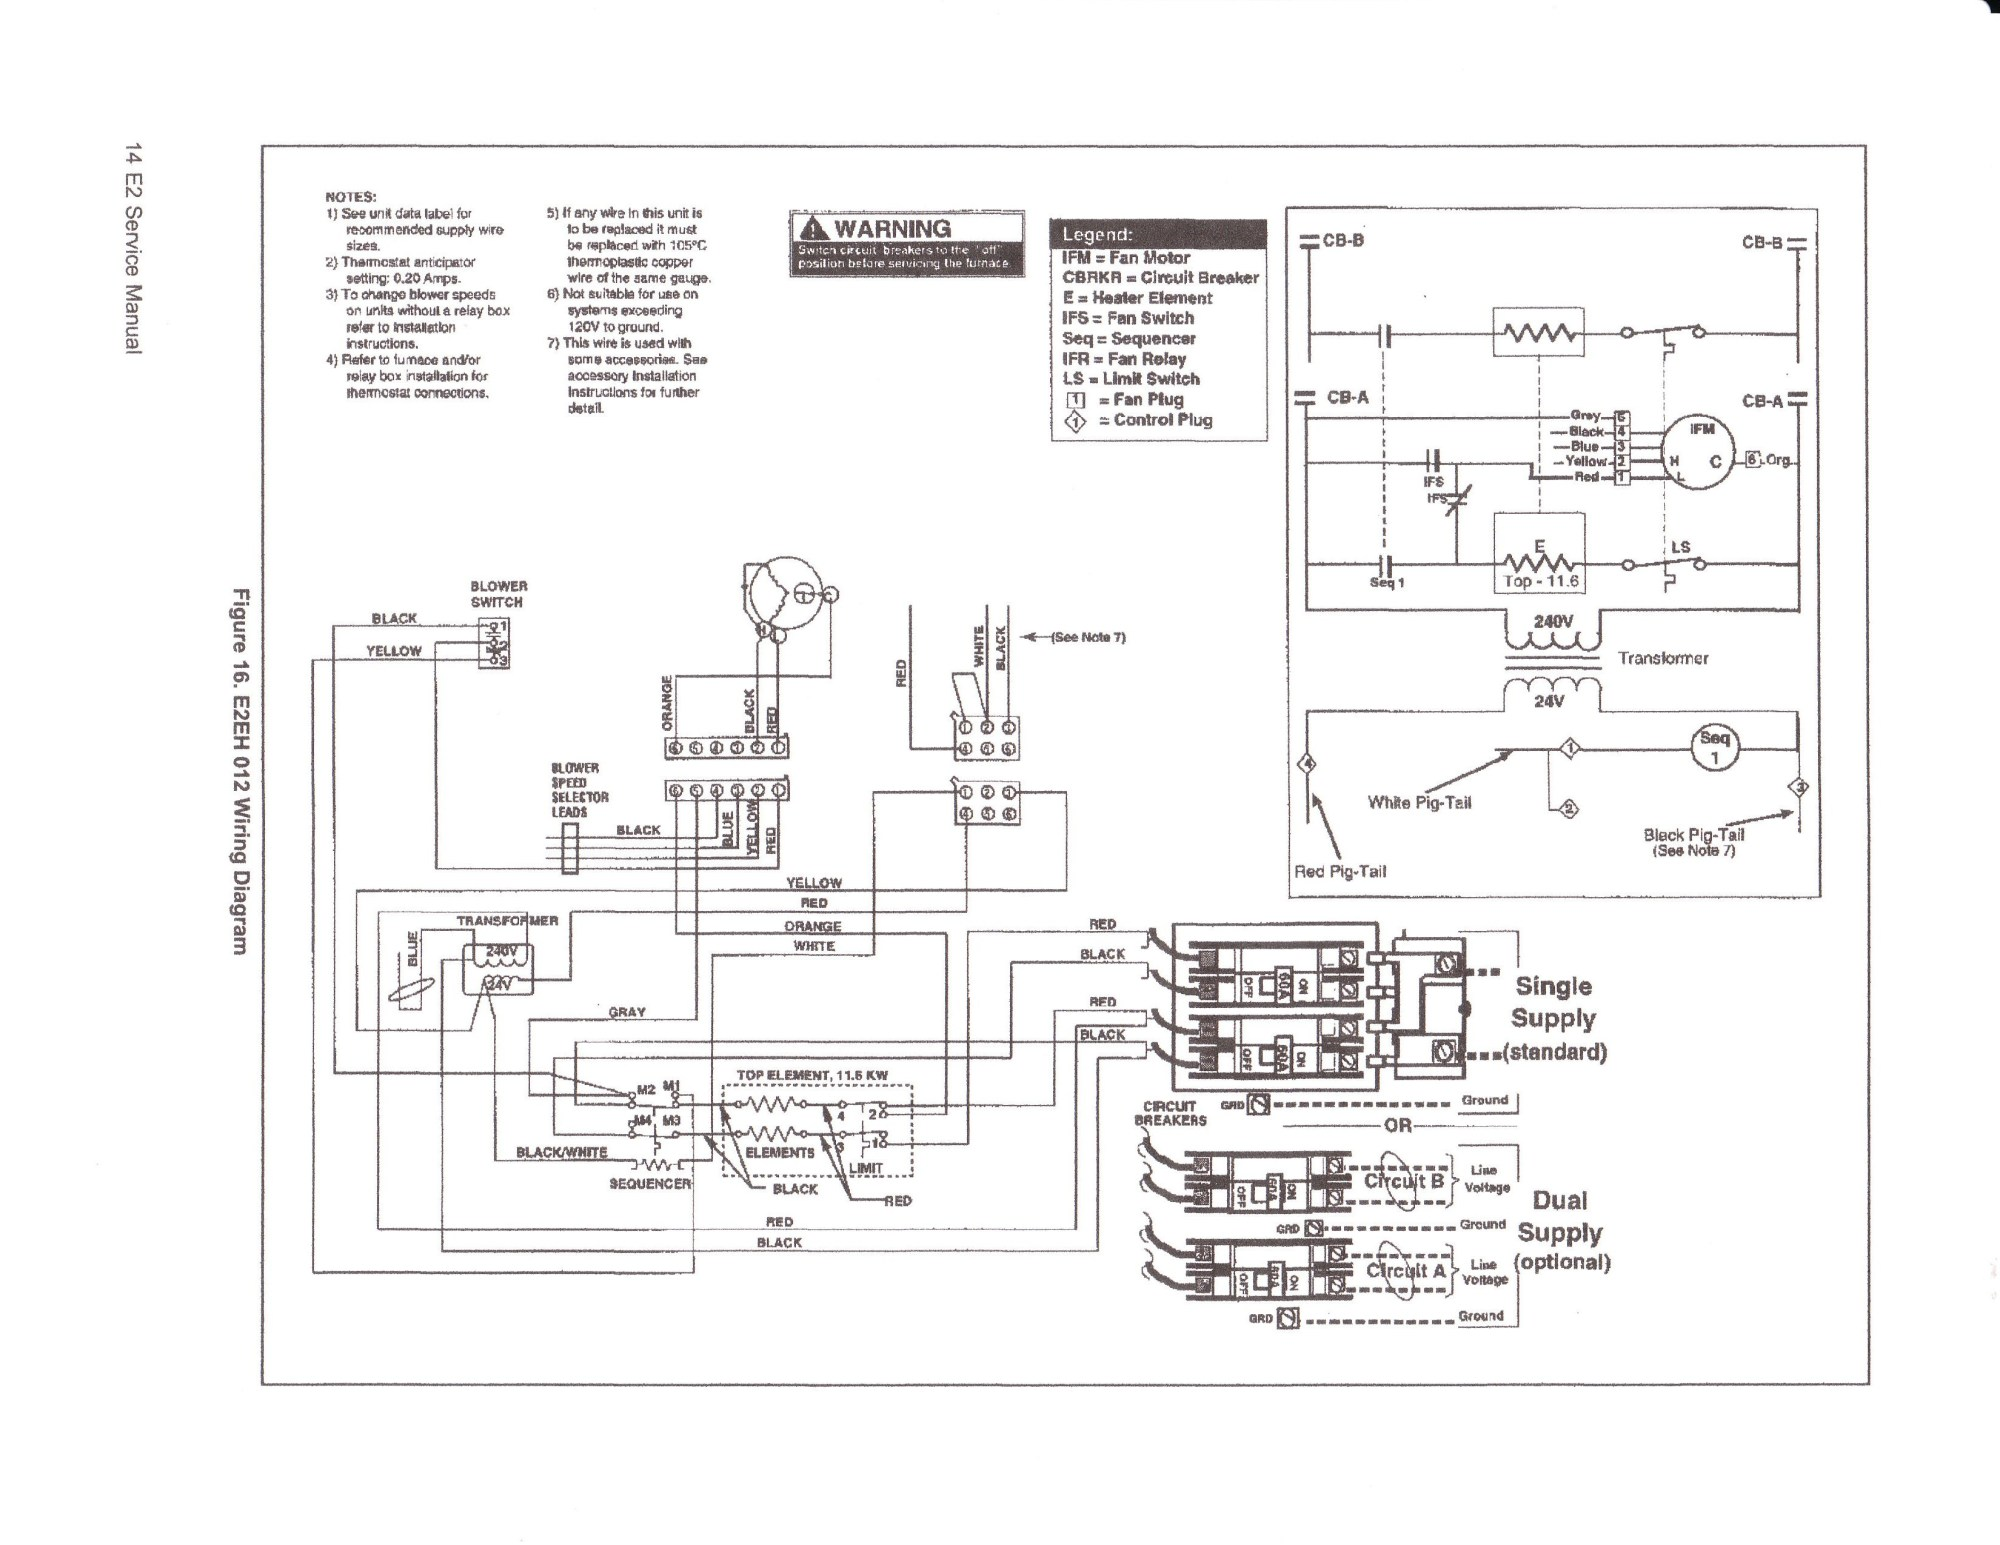 hight resolution of gas furnace wiring diagram download wiring diagram samplege gas furnace wiring 2